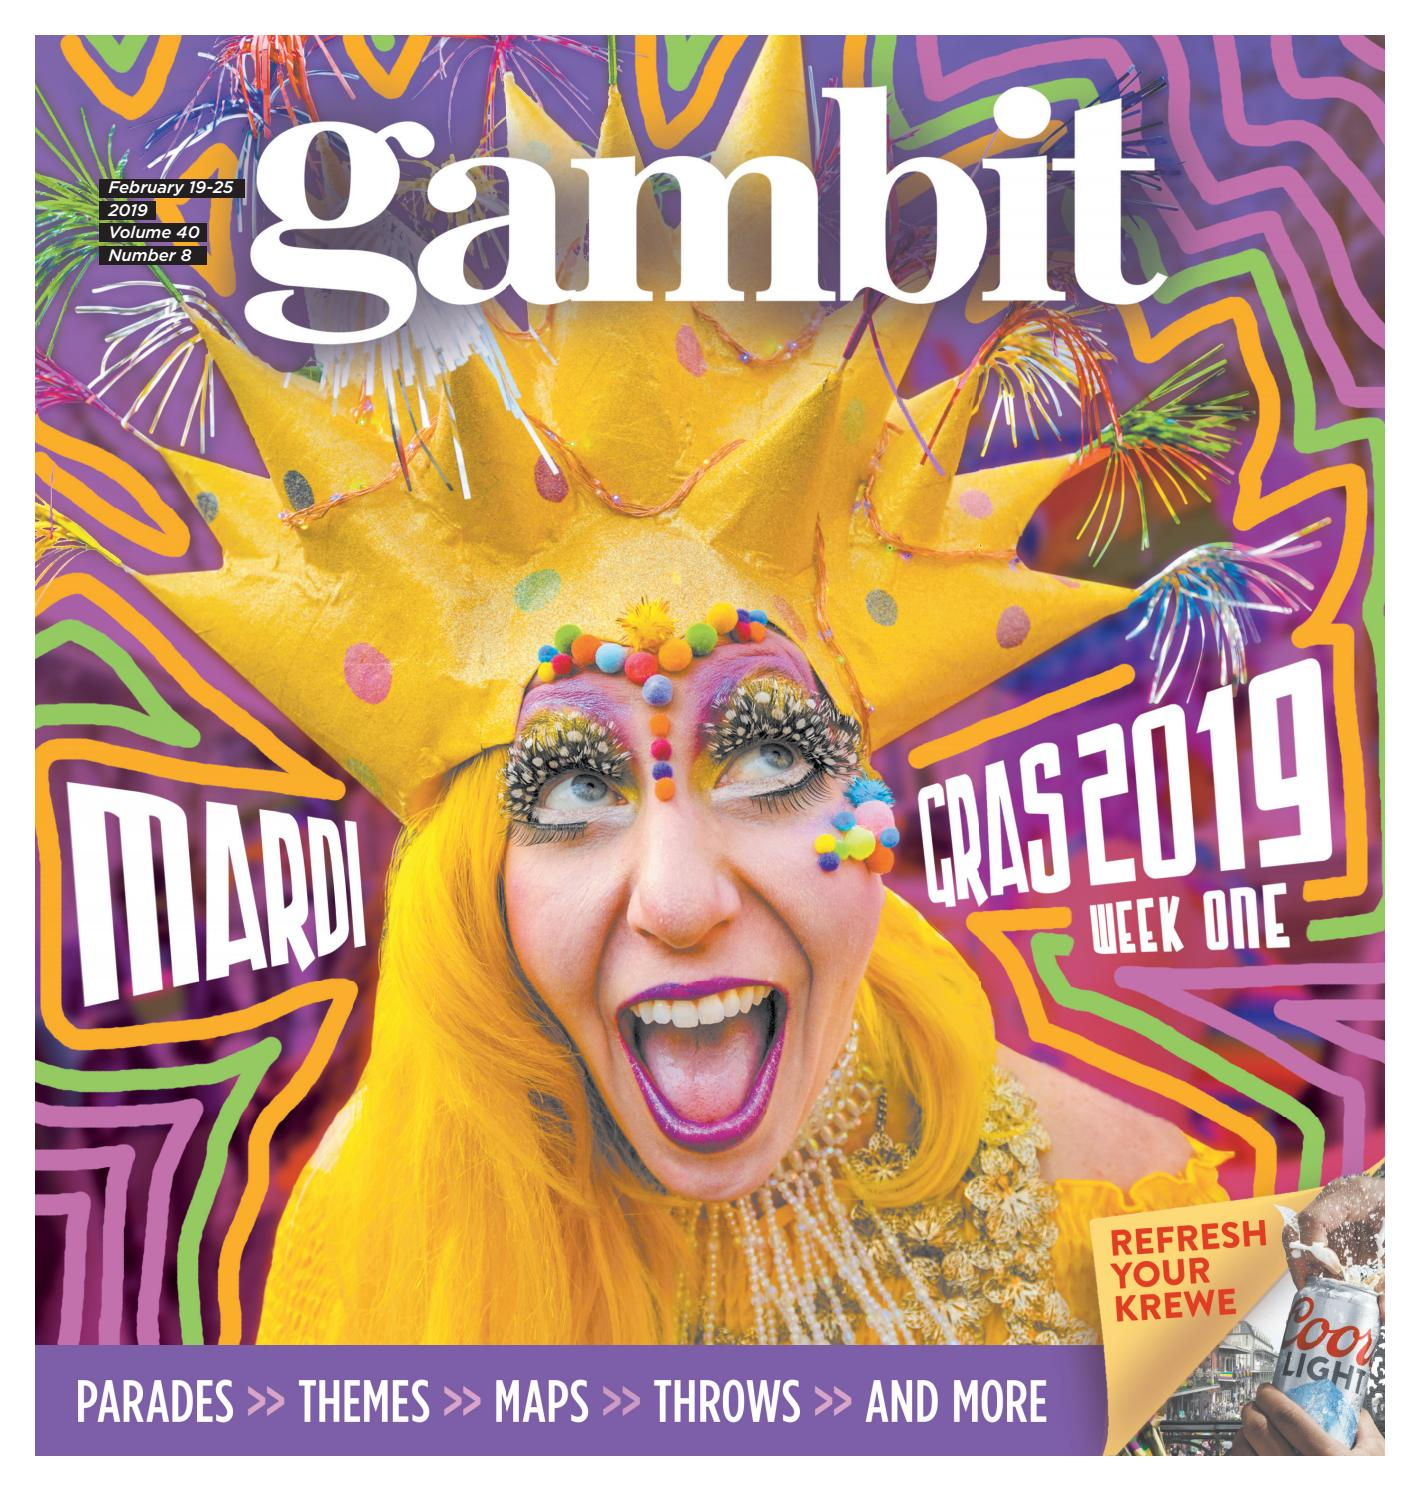 Harahan Christmas Parade 2021 Permit Gambit New Orleans February 19 2019 By Gambit New Orleans Issuu